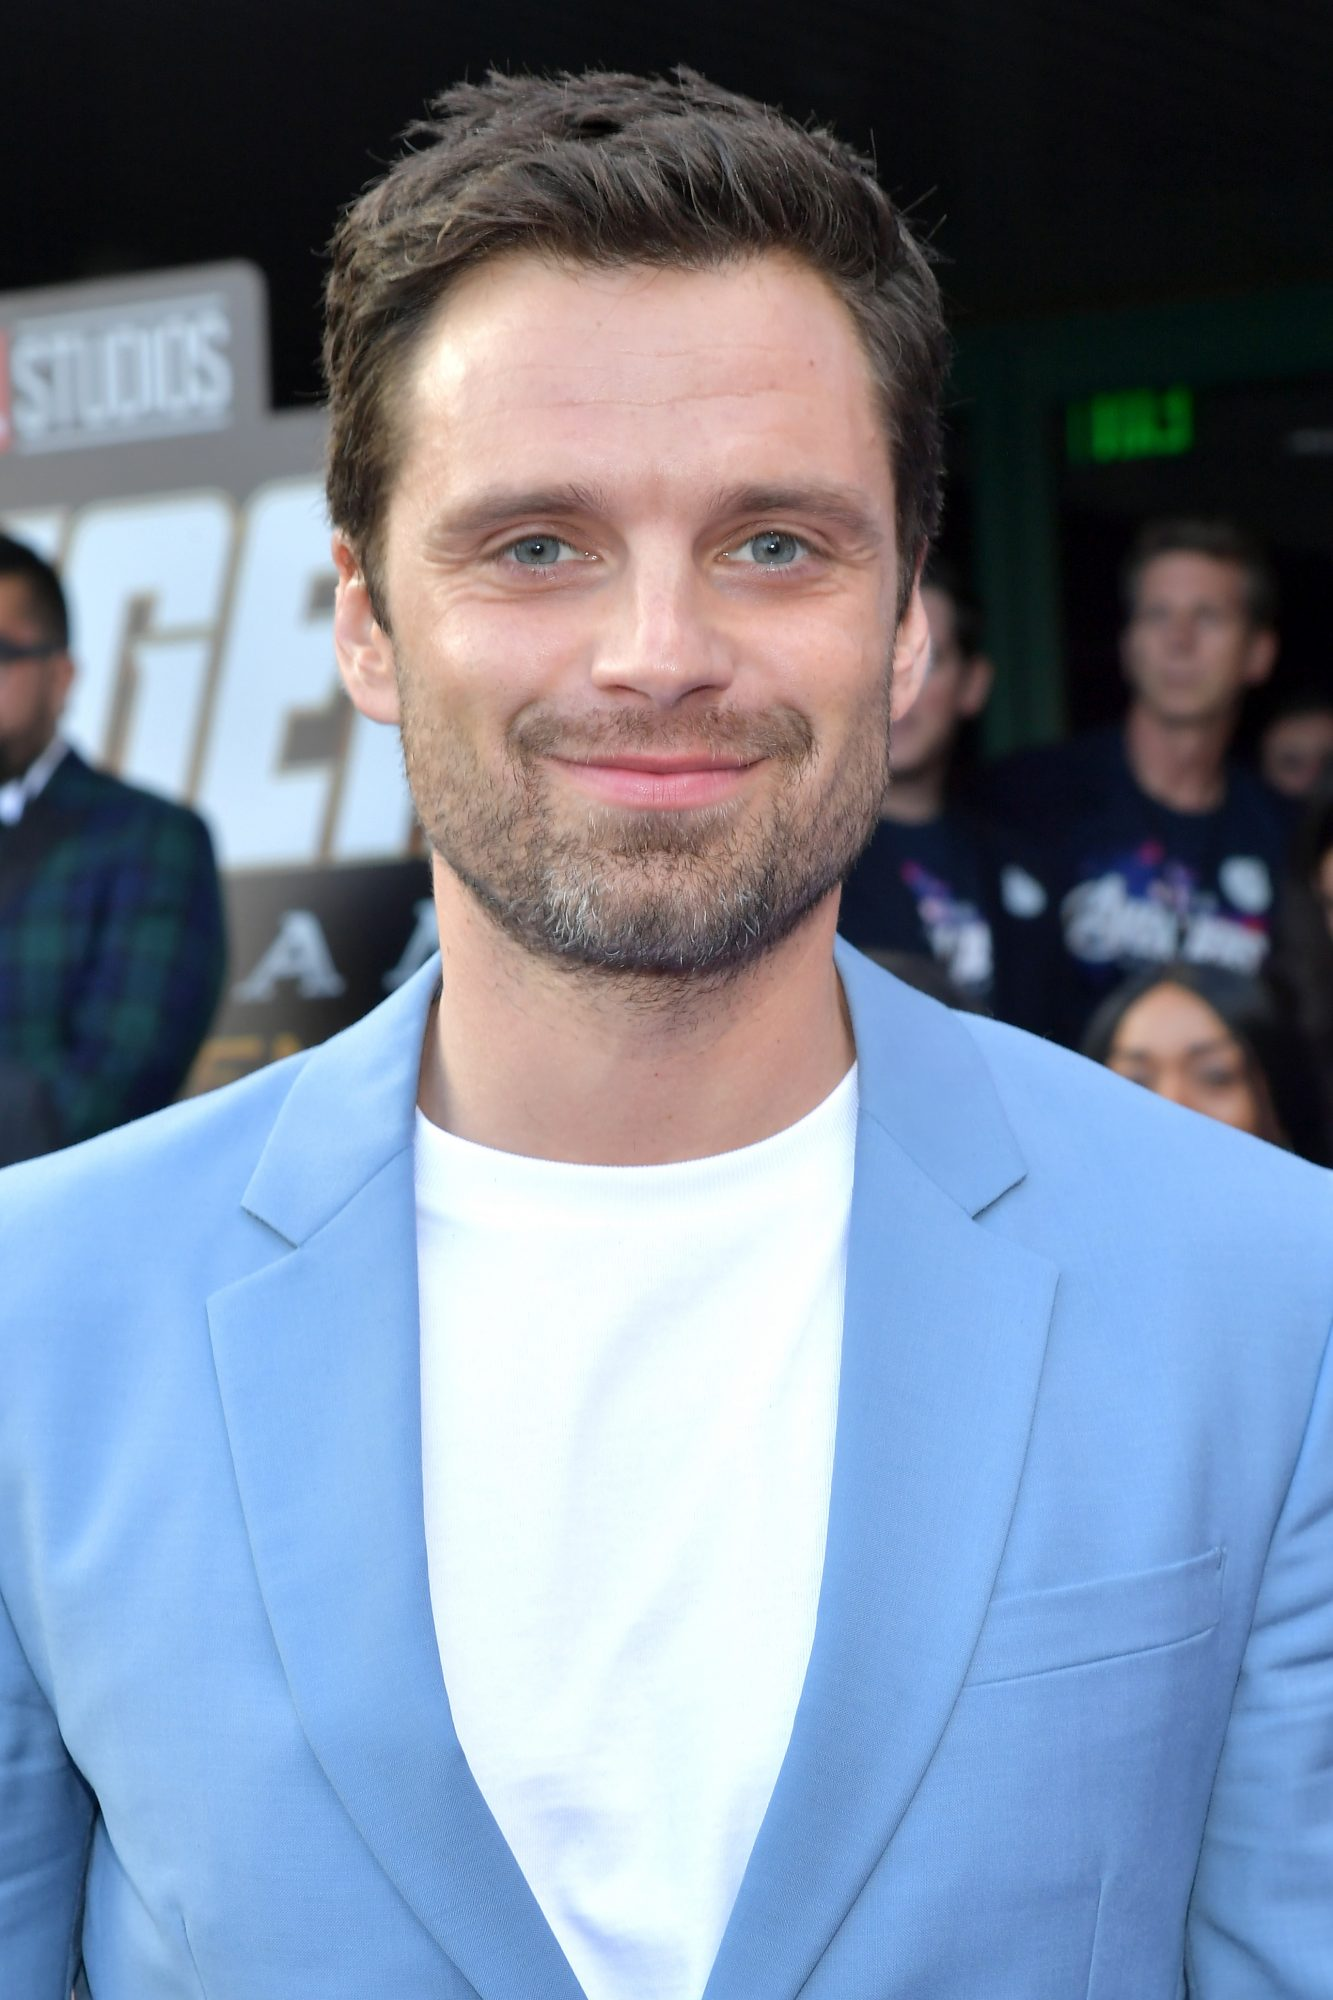 """Sebastian Stan attends the world premiere of Walt Disney Studios Motion Pictures """"Avengers: Endgame"""" at the Los Angeles Convention Center on April 22, 2019 in Los Angeles, California.  (Photo by Amy Sussman/Getty Images)"""